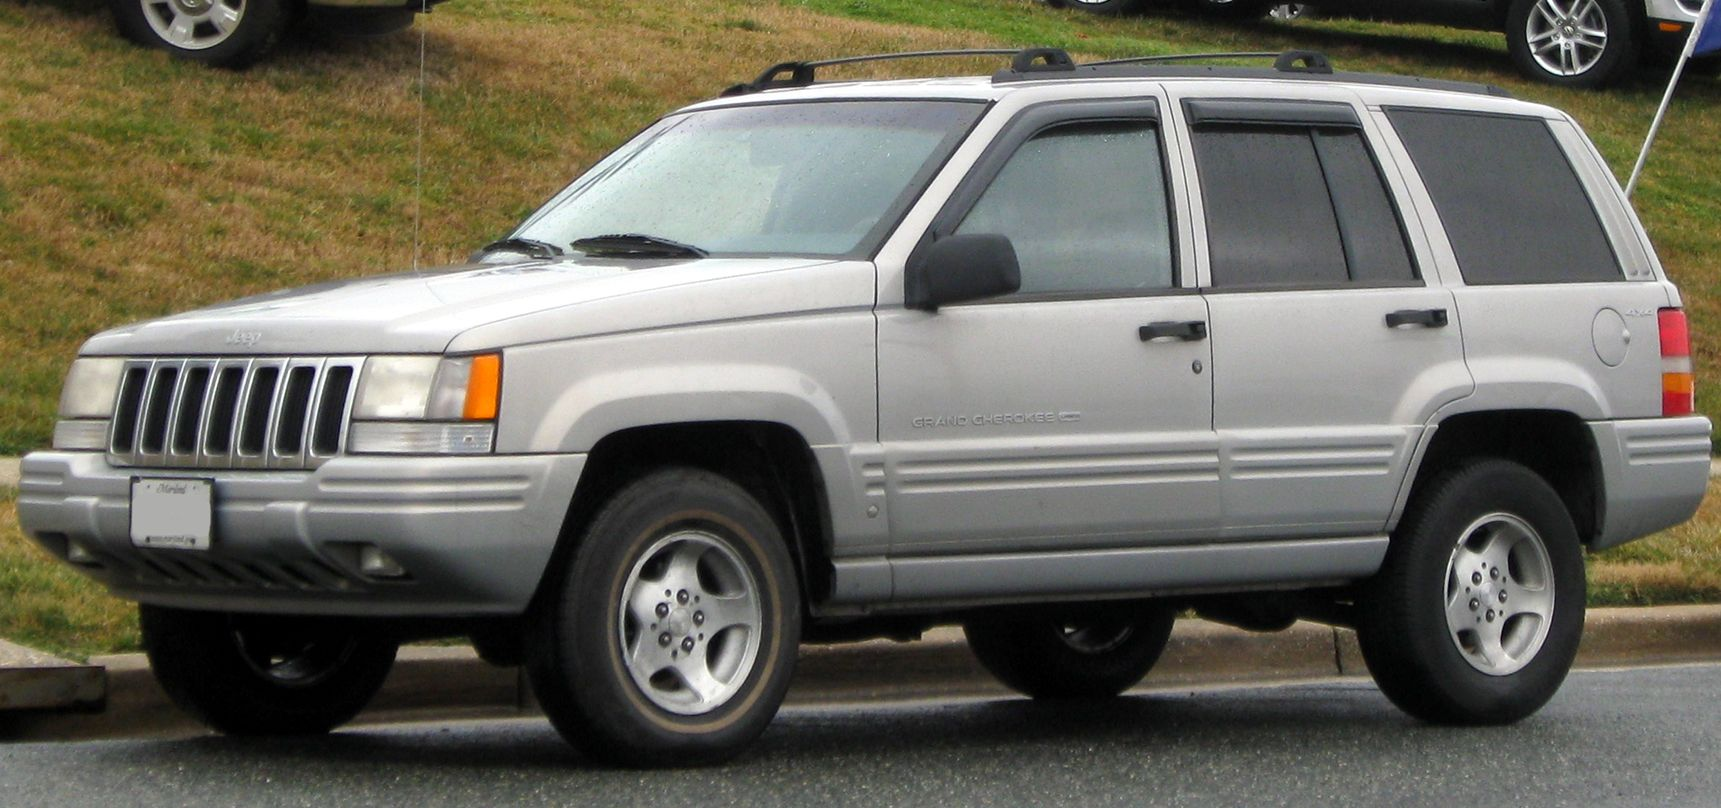 1st Jeep Grand Cherokee 02 29 2012 Jeep Grand Cherokee Zj Wikipedia Jeep Grand Cherokee Zj Jeep Grand Cherokee Jeep